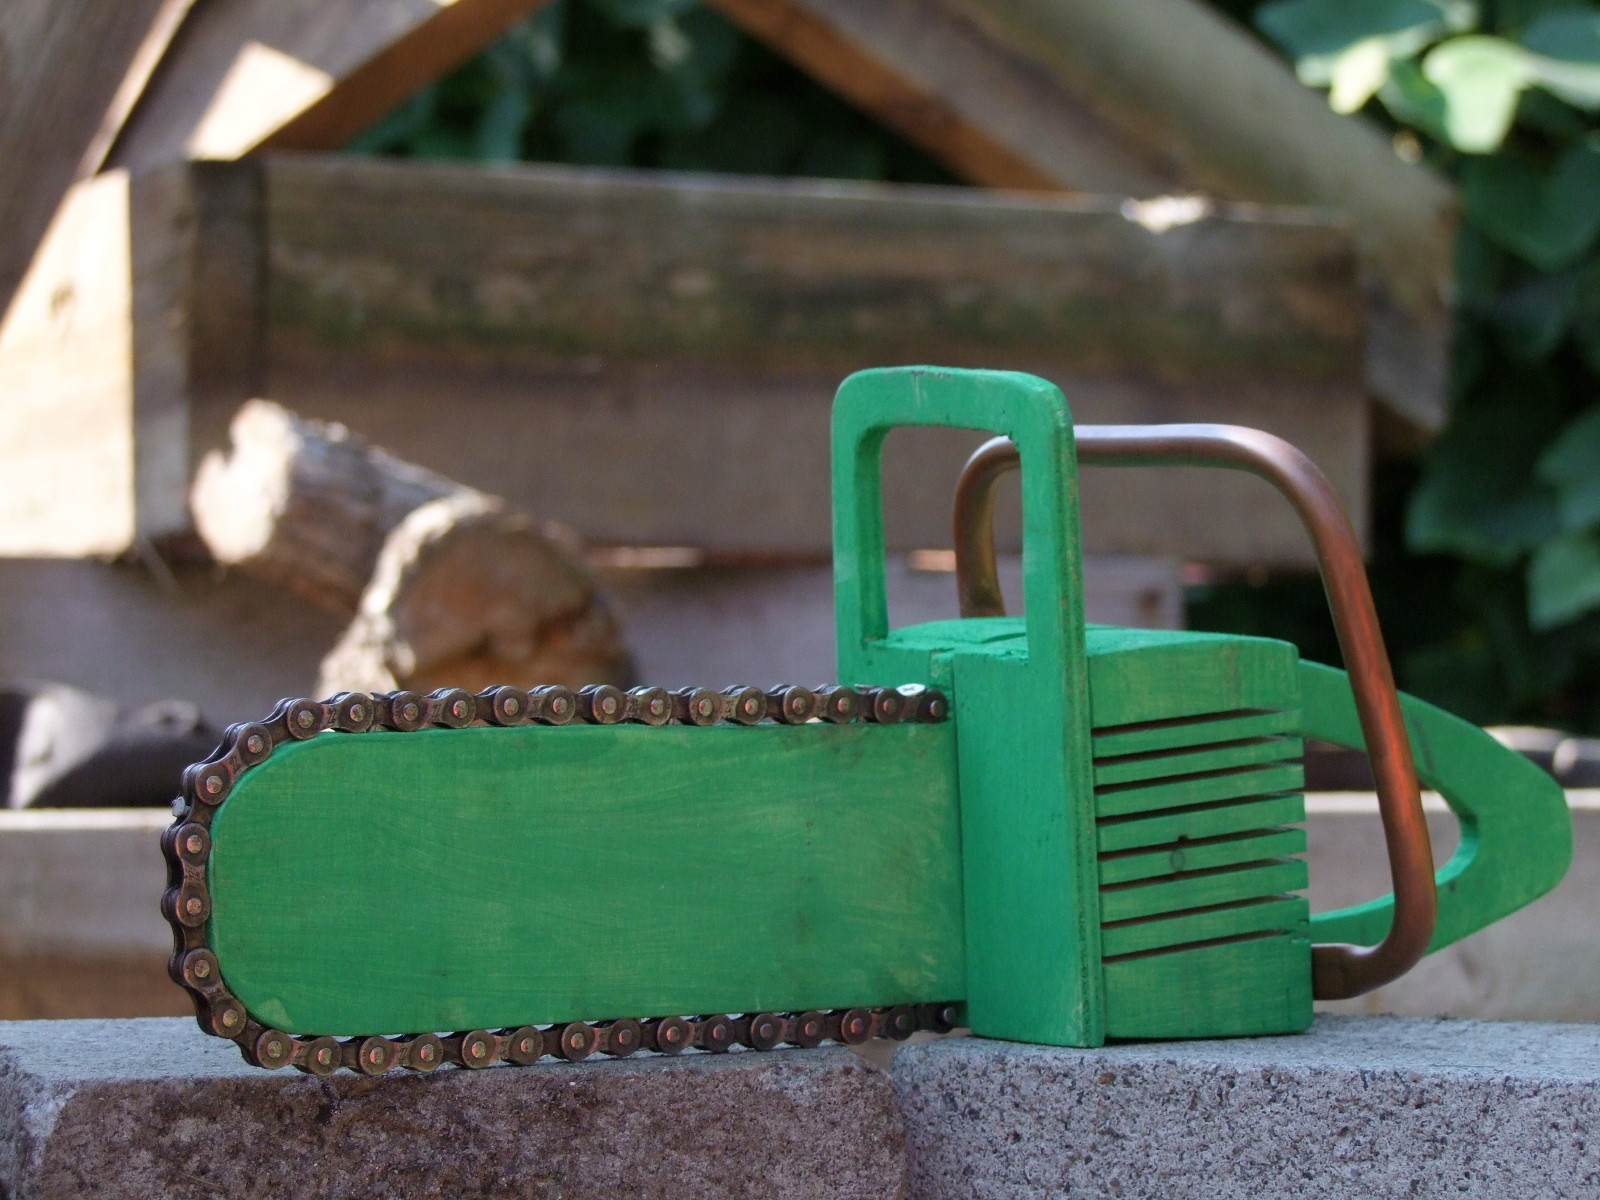 Wooden Chain Saw Toy